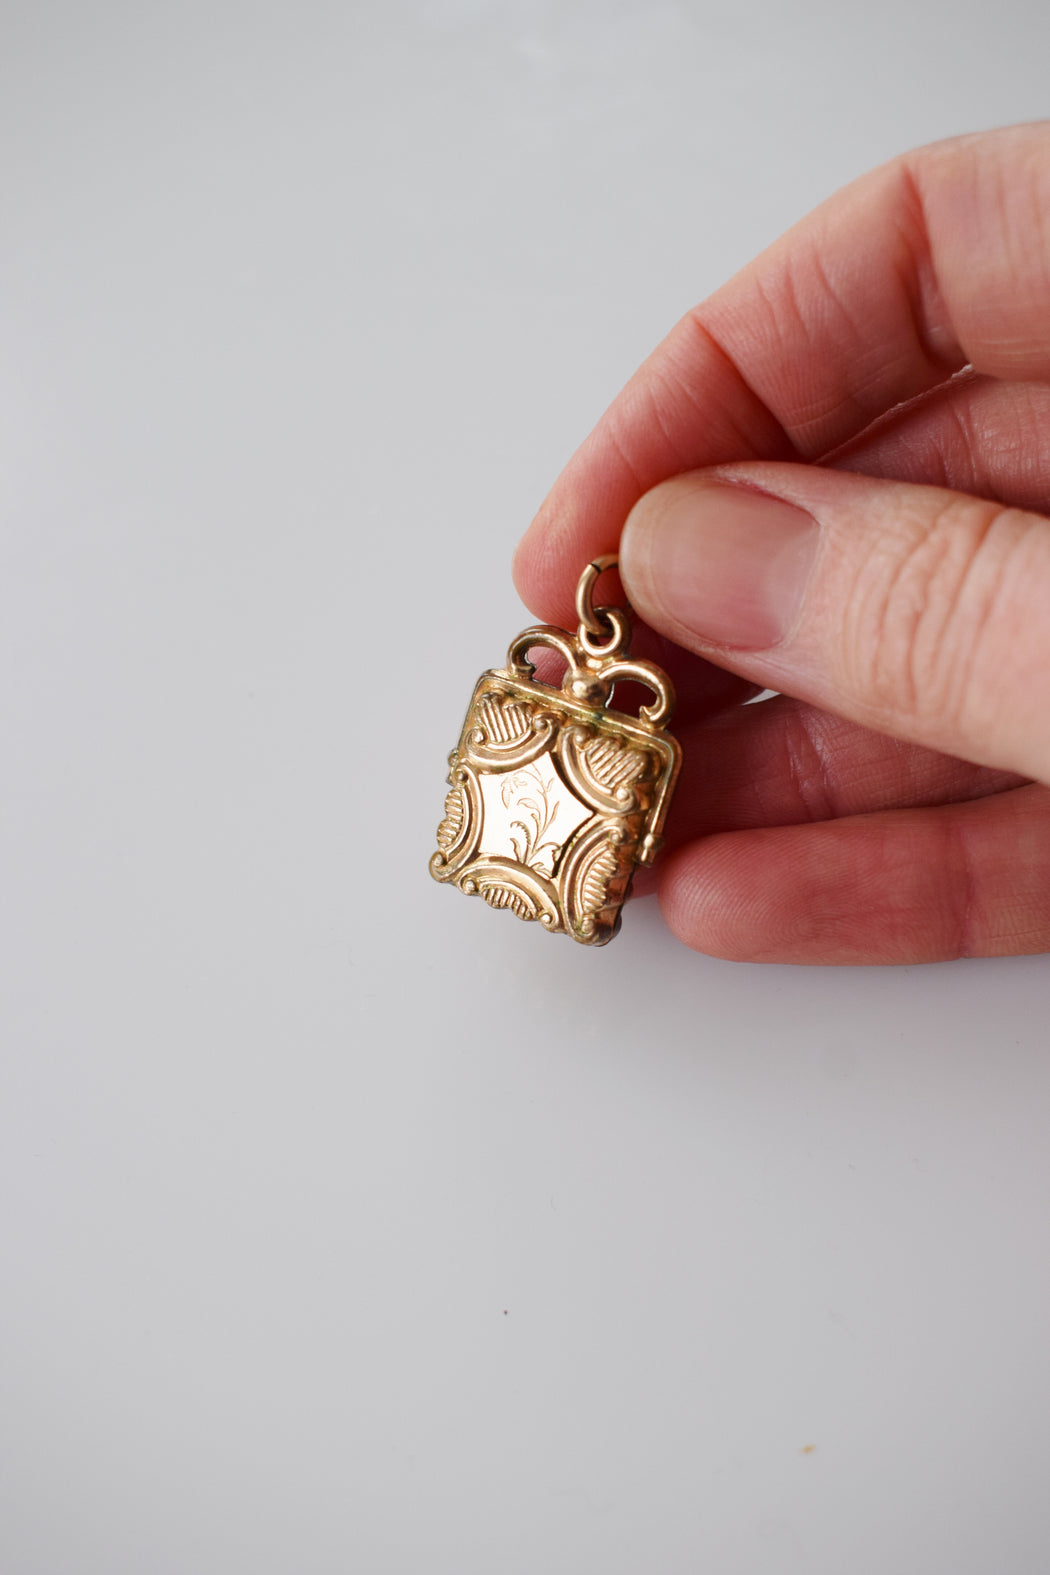 Antique Victorian Fob Charm